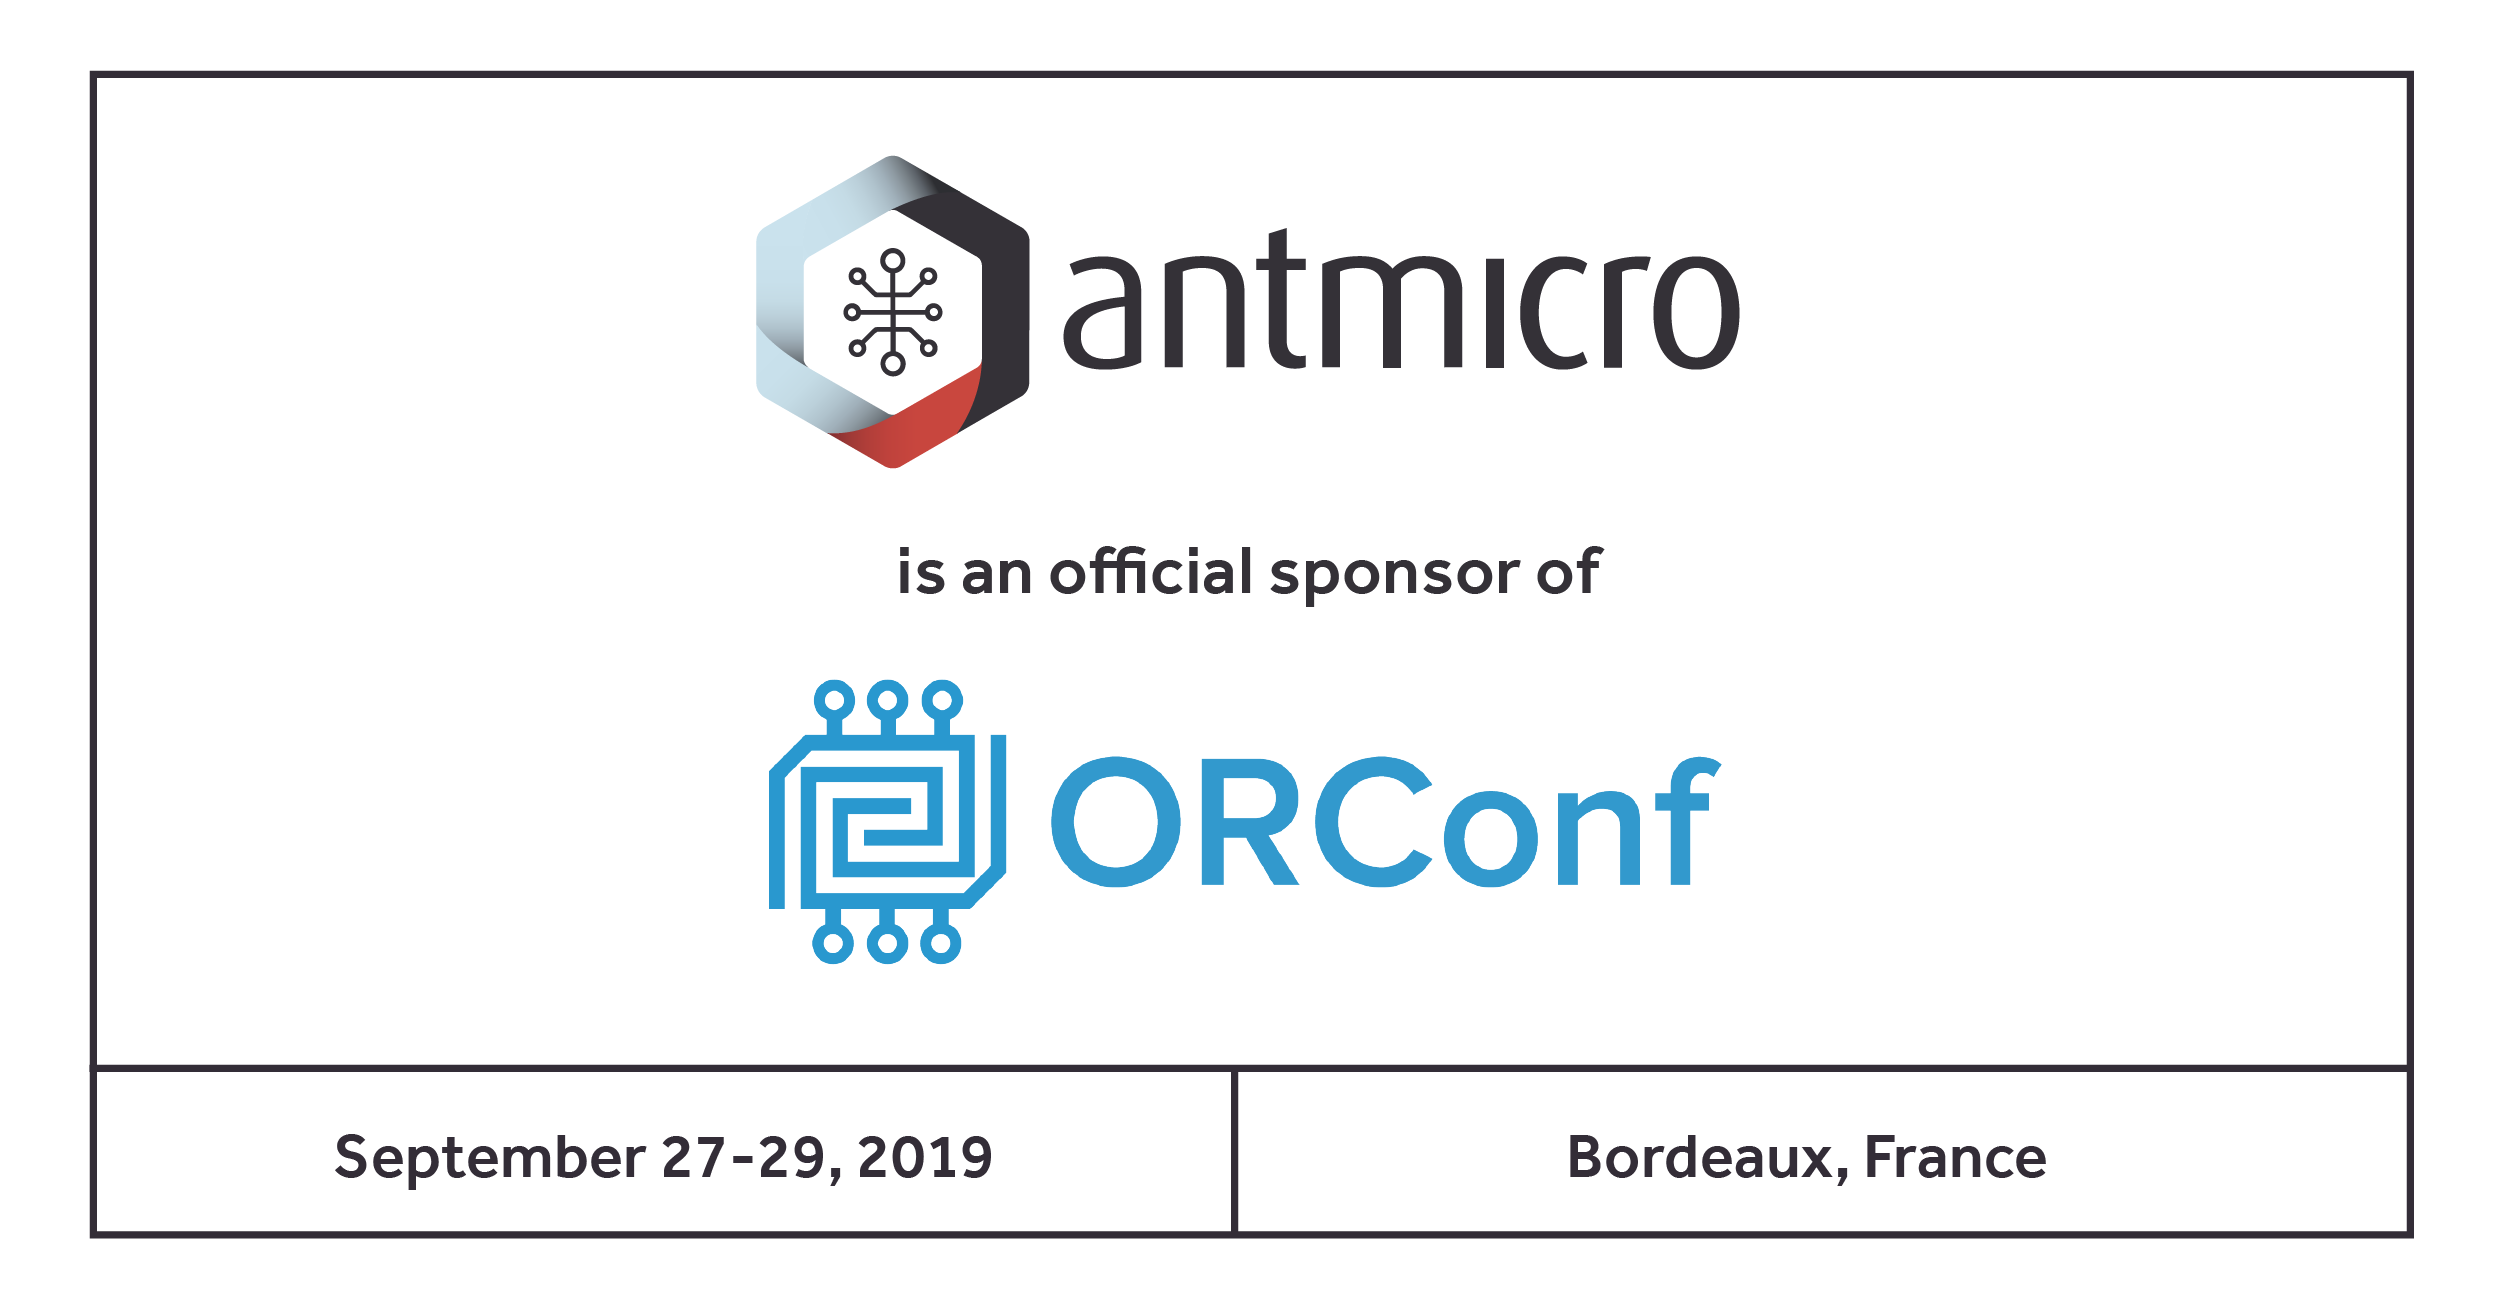 Antmicro sponsors ORConf 2019